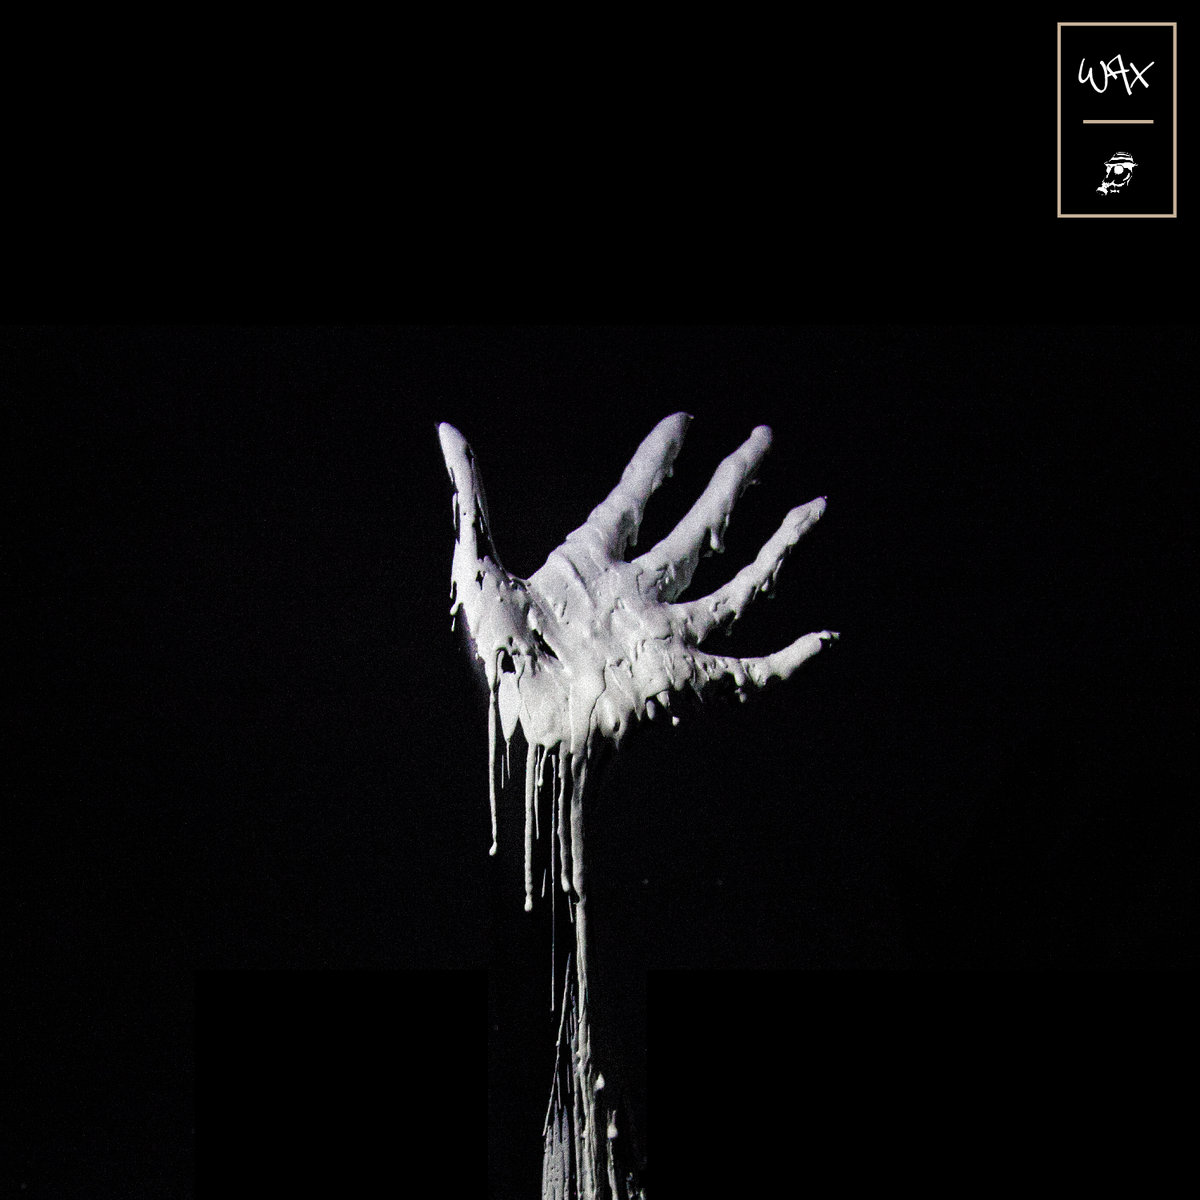 """Wax"" Compilation"